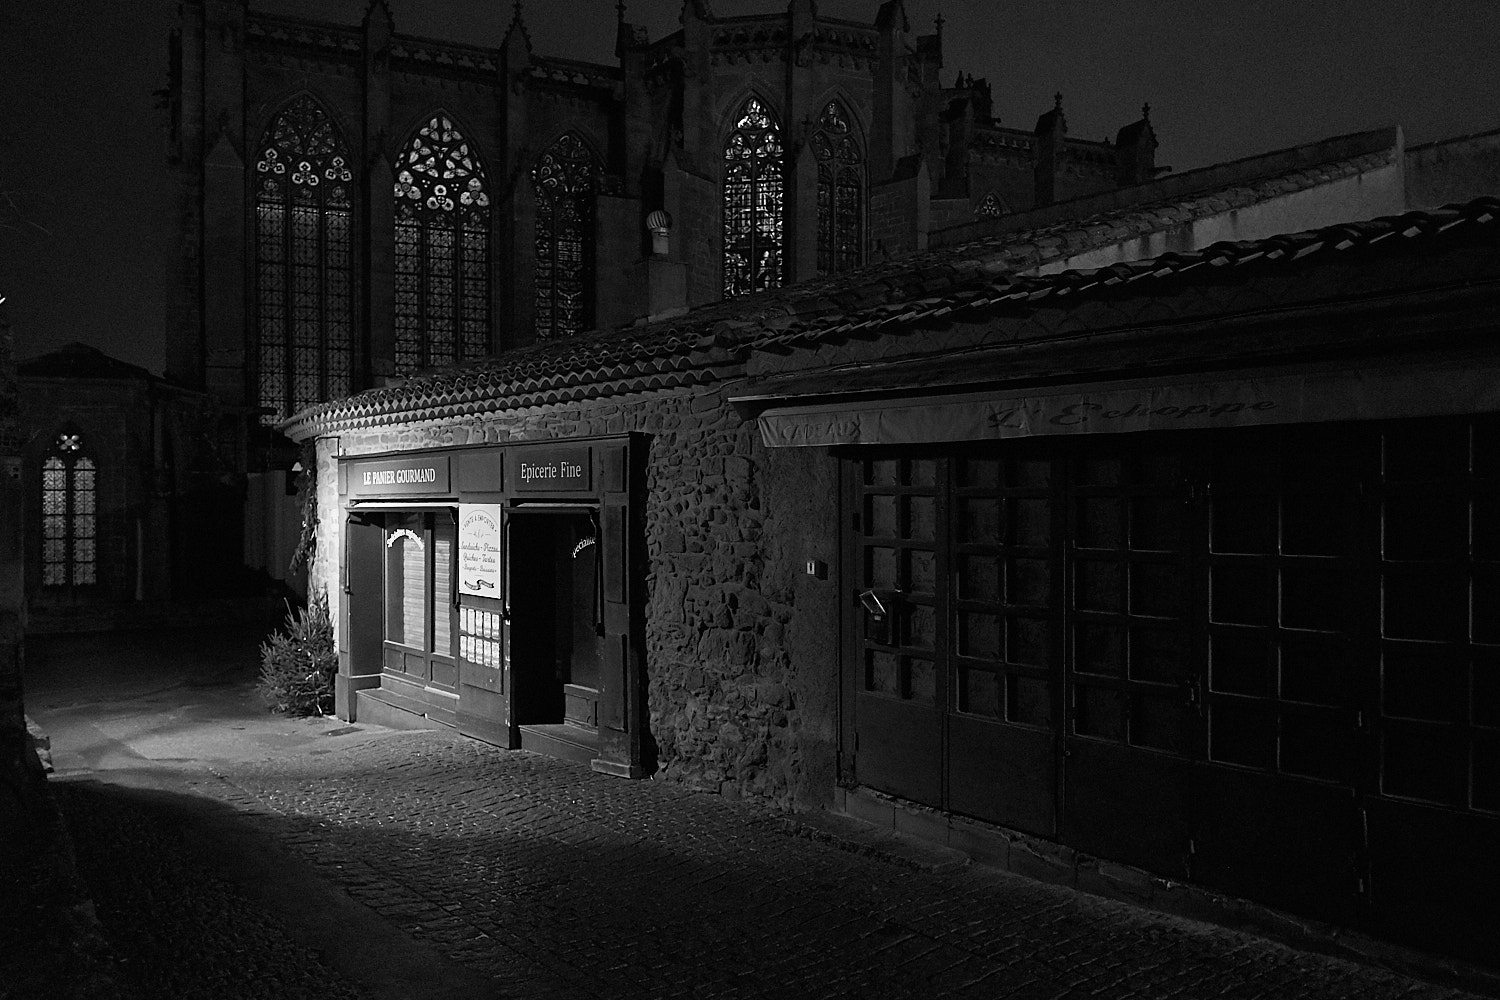 Night street view of the cathedral in the fortress city of Carcassone in south France